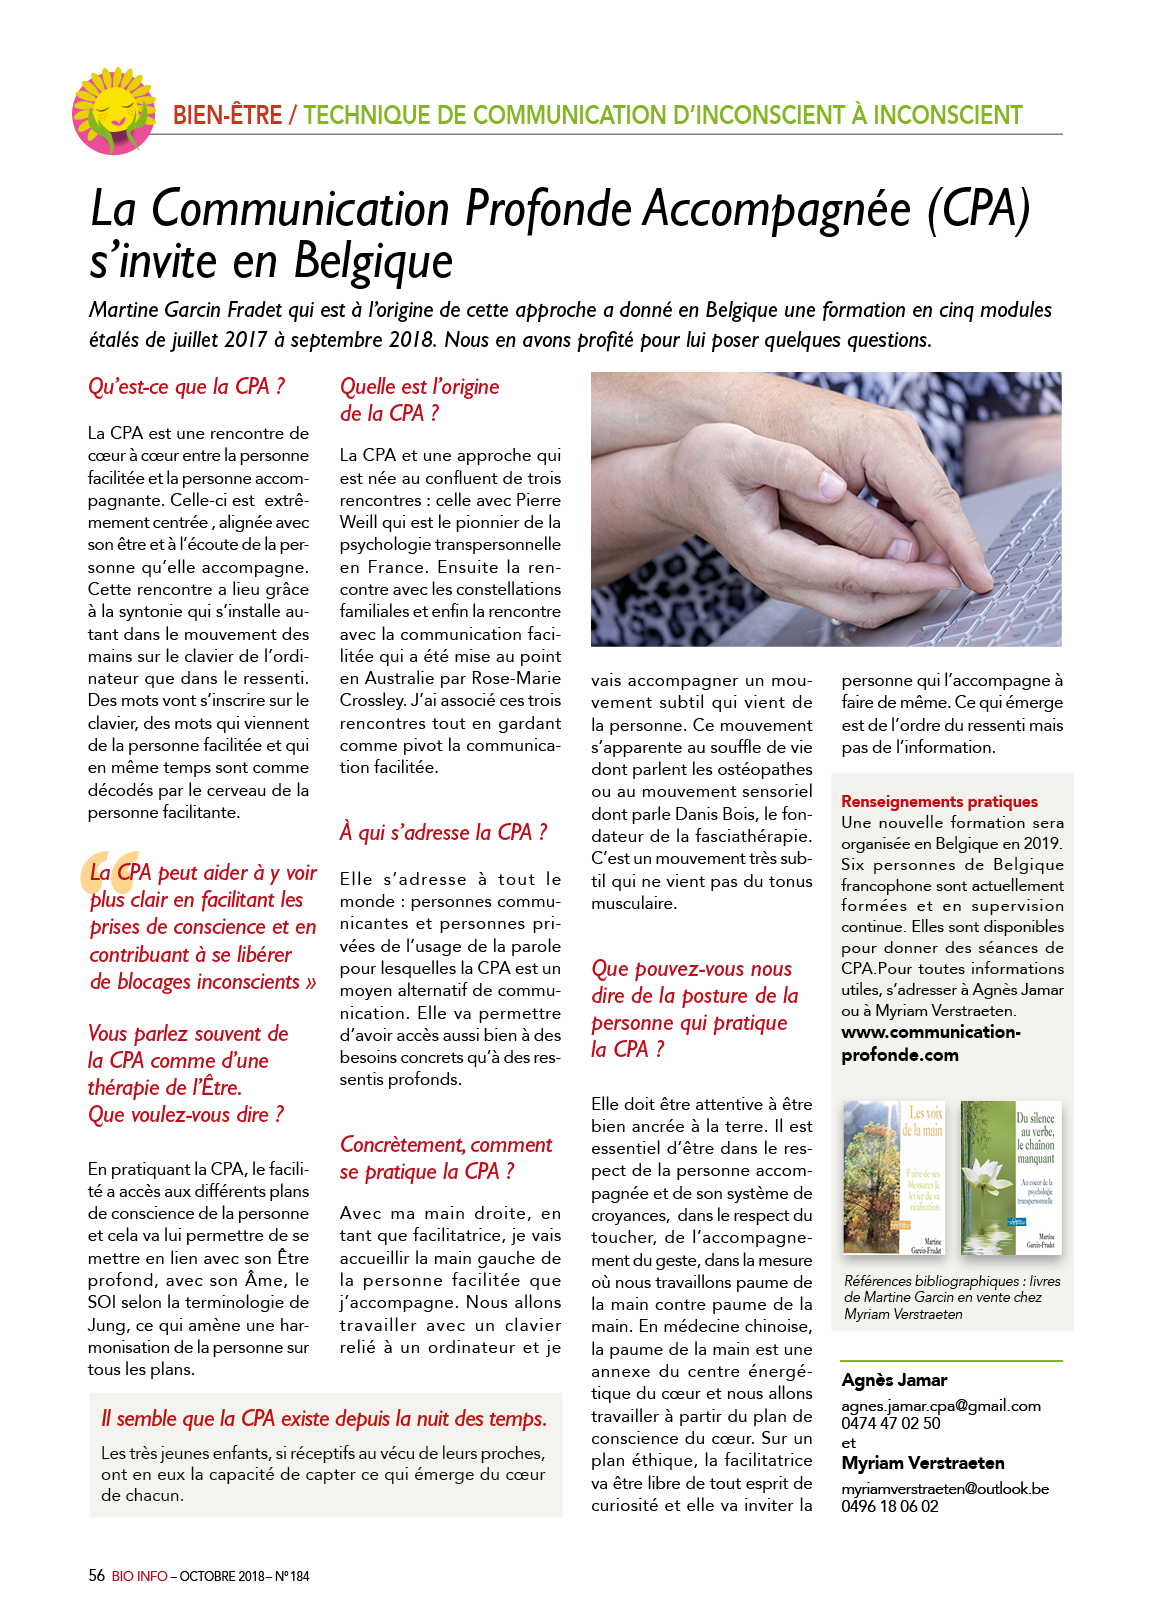 Article du Bioinfo